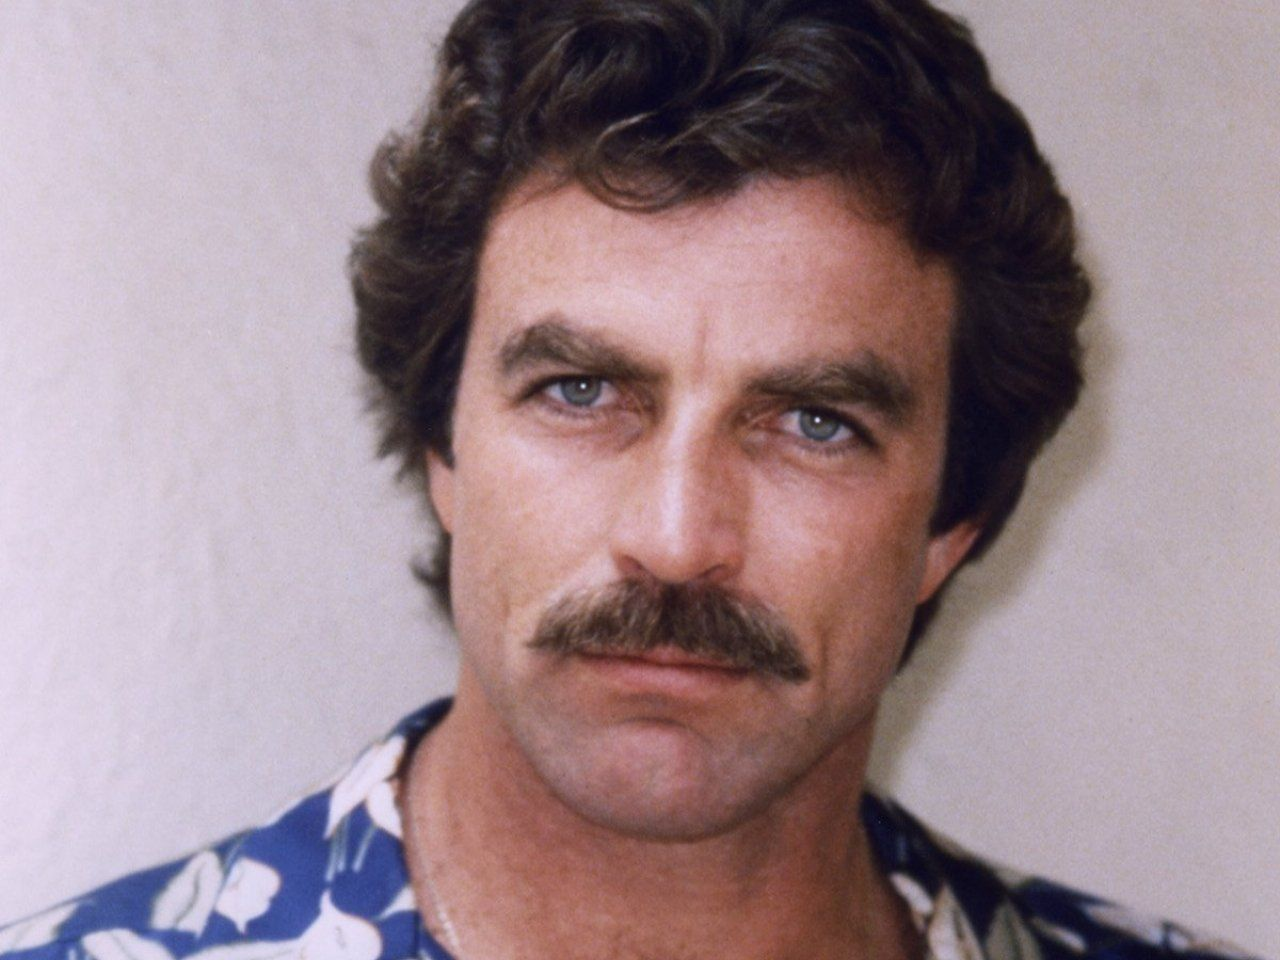 Tom Selleck earned a  million dollar salary, leaving the net worth at 25 million in 2017